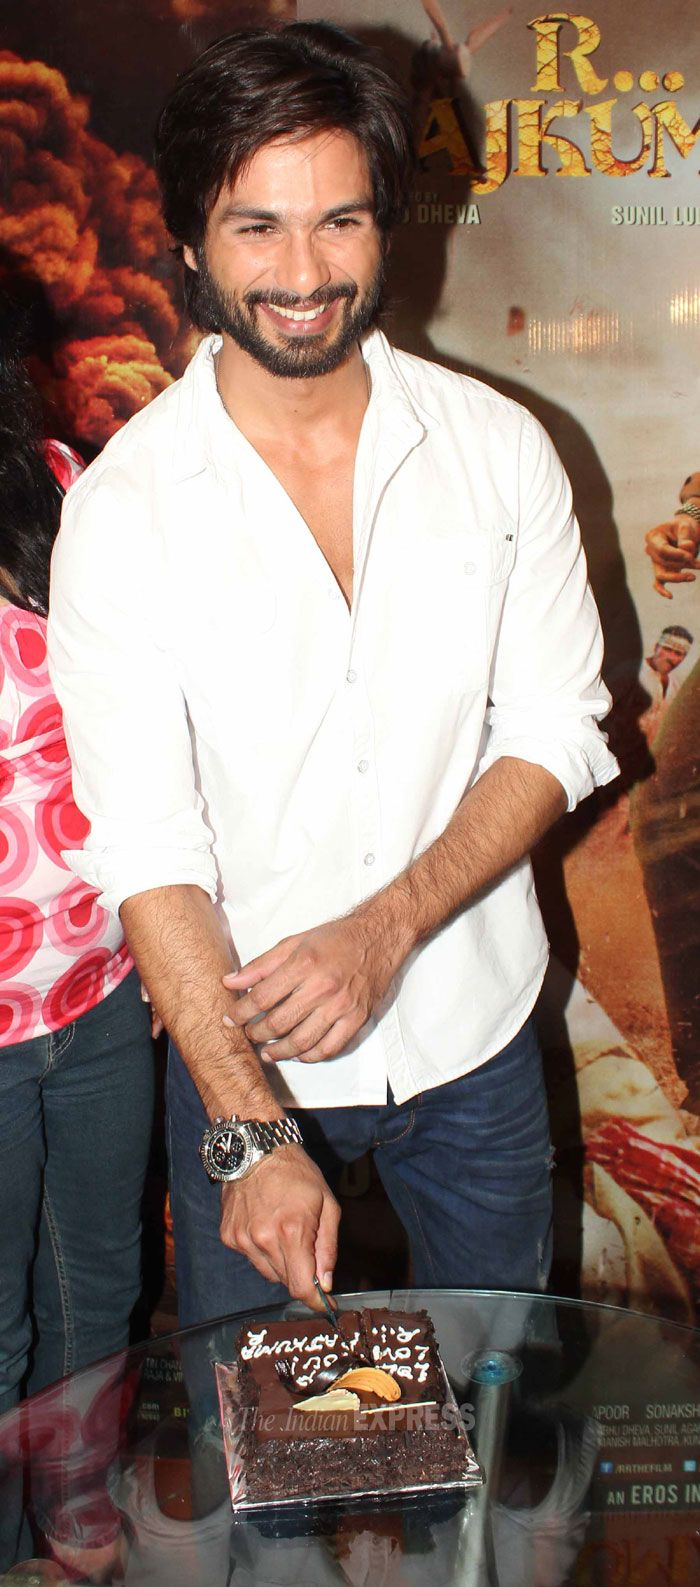 Shahid Kapoor went on to watch his film R...Rajkumar with